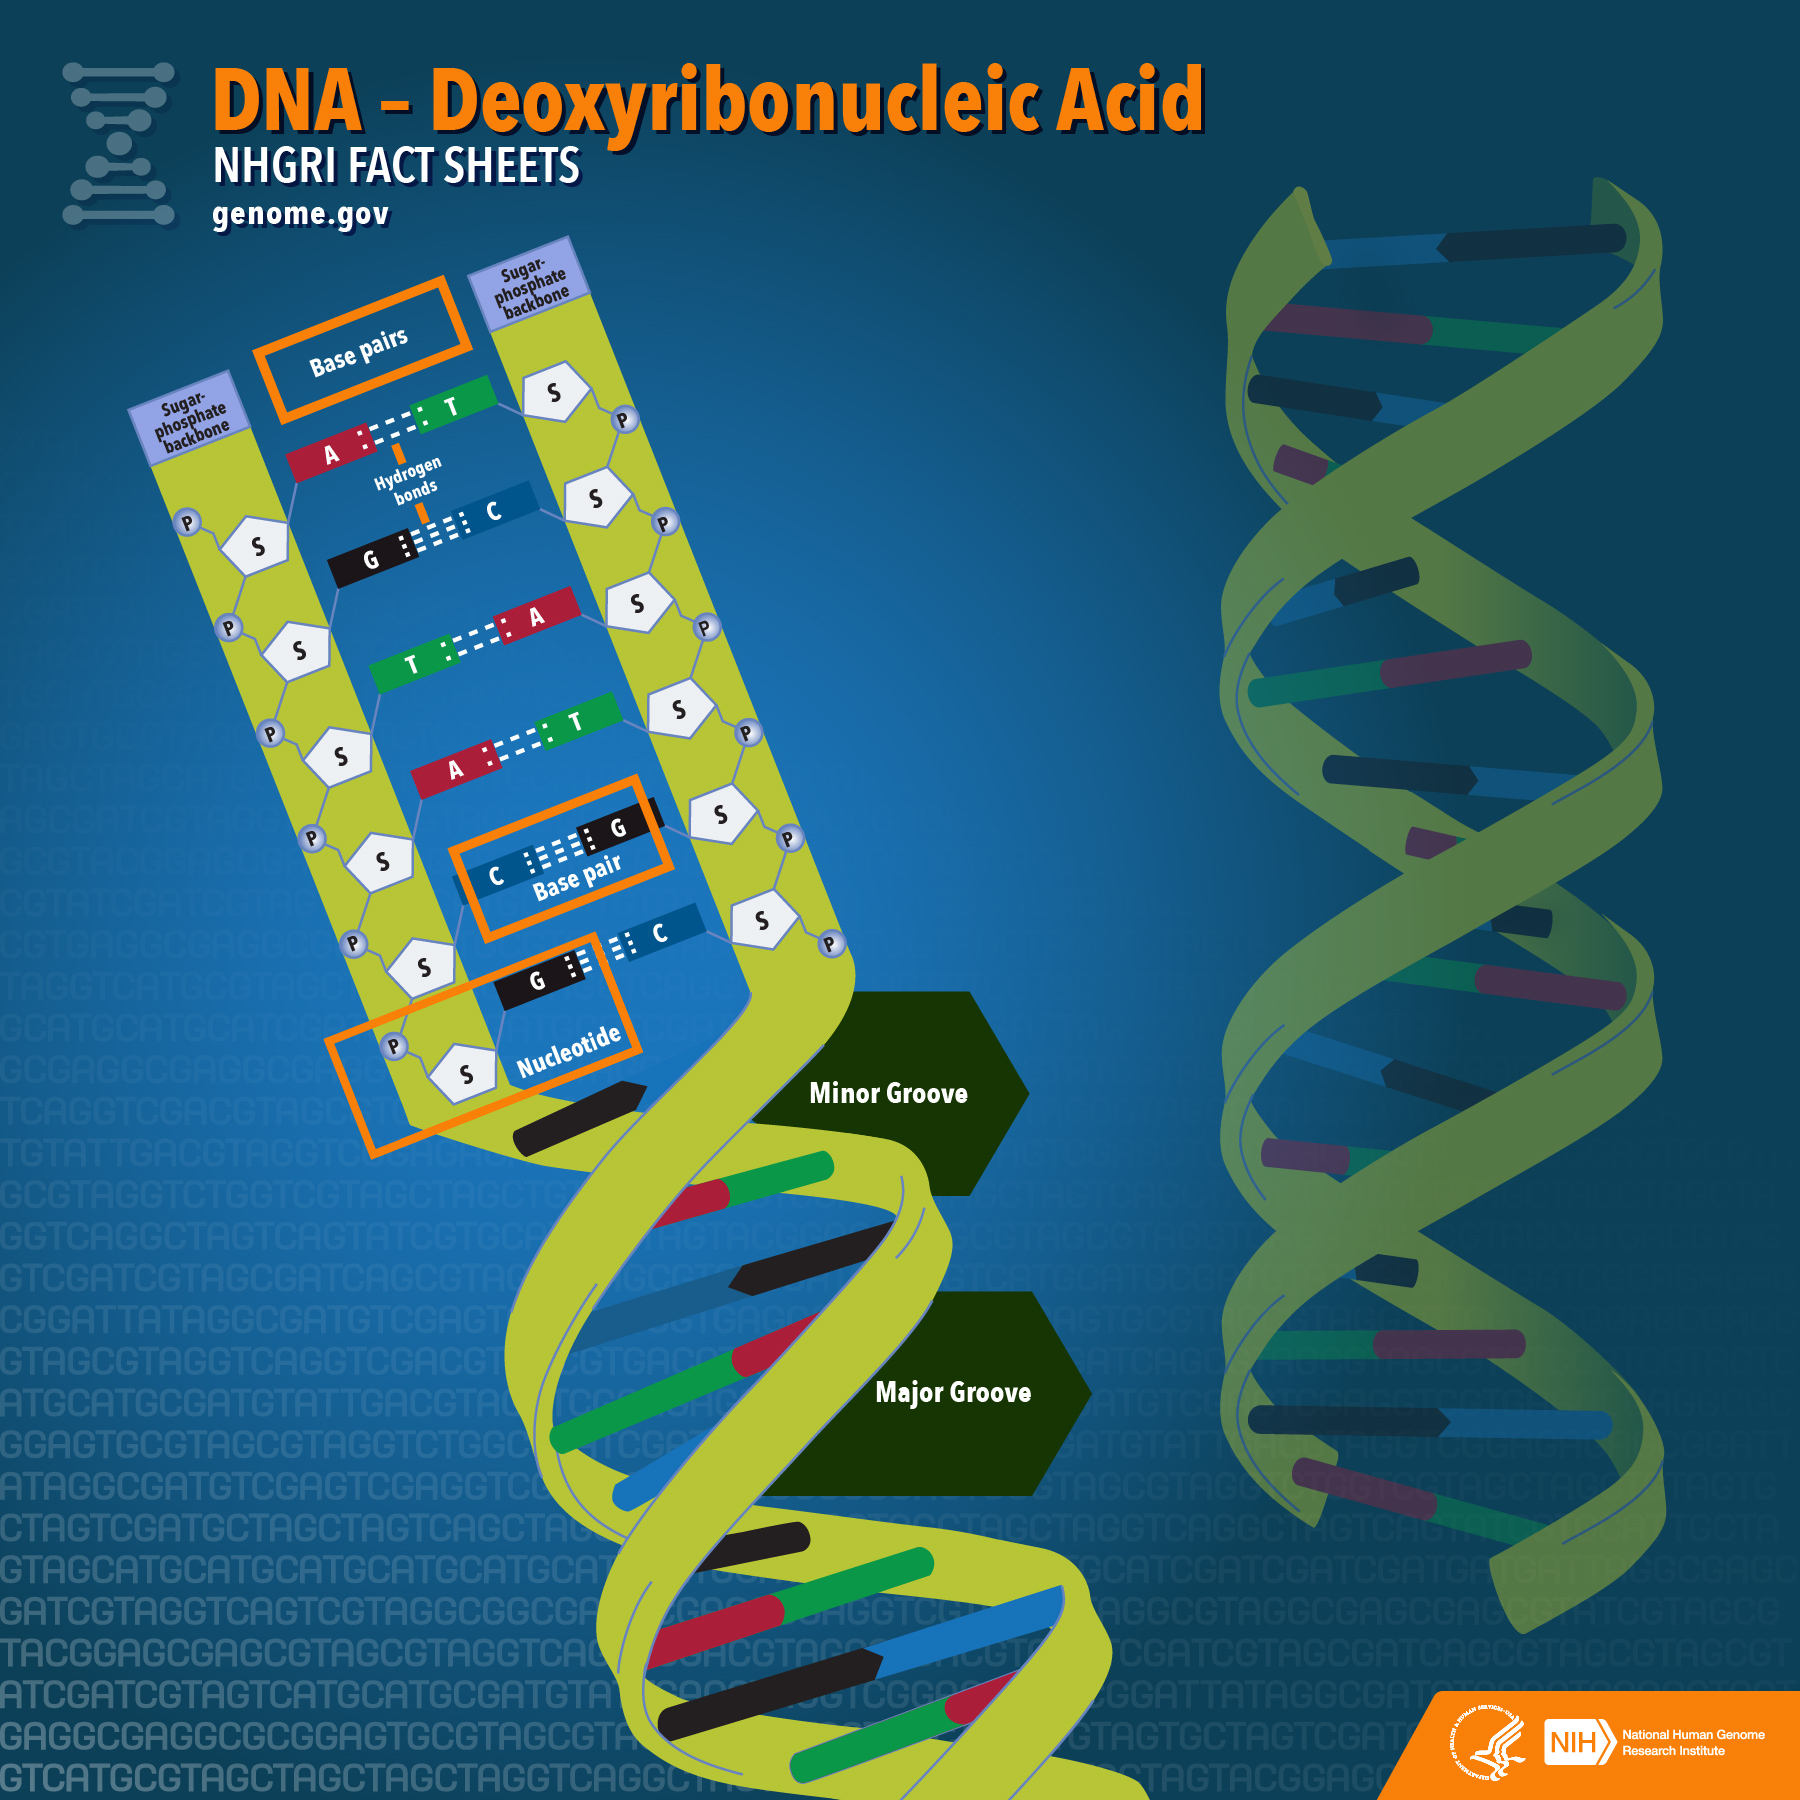 an introduction to dna or deoxyribonucleic acid Dnaintroduction: what is dna dna (deoxyribonucleic acid) • • • a complex molecule containing all necessary information to build and maintain an.